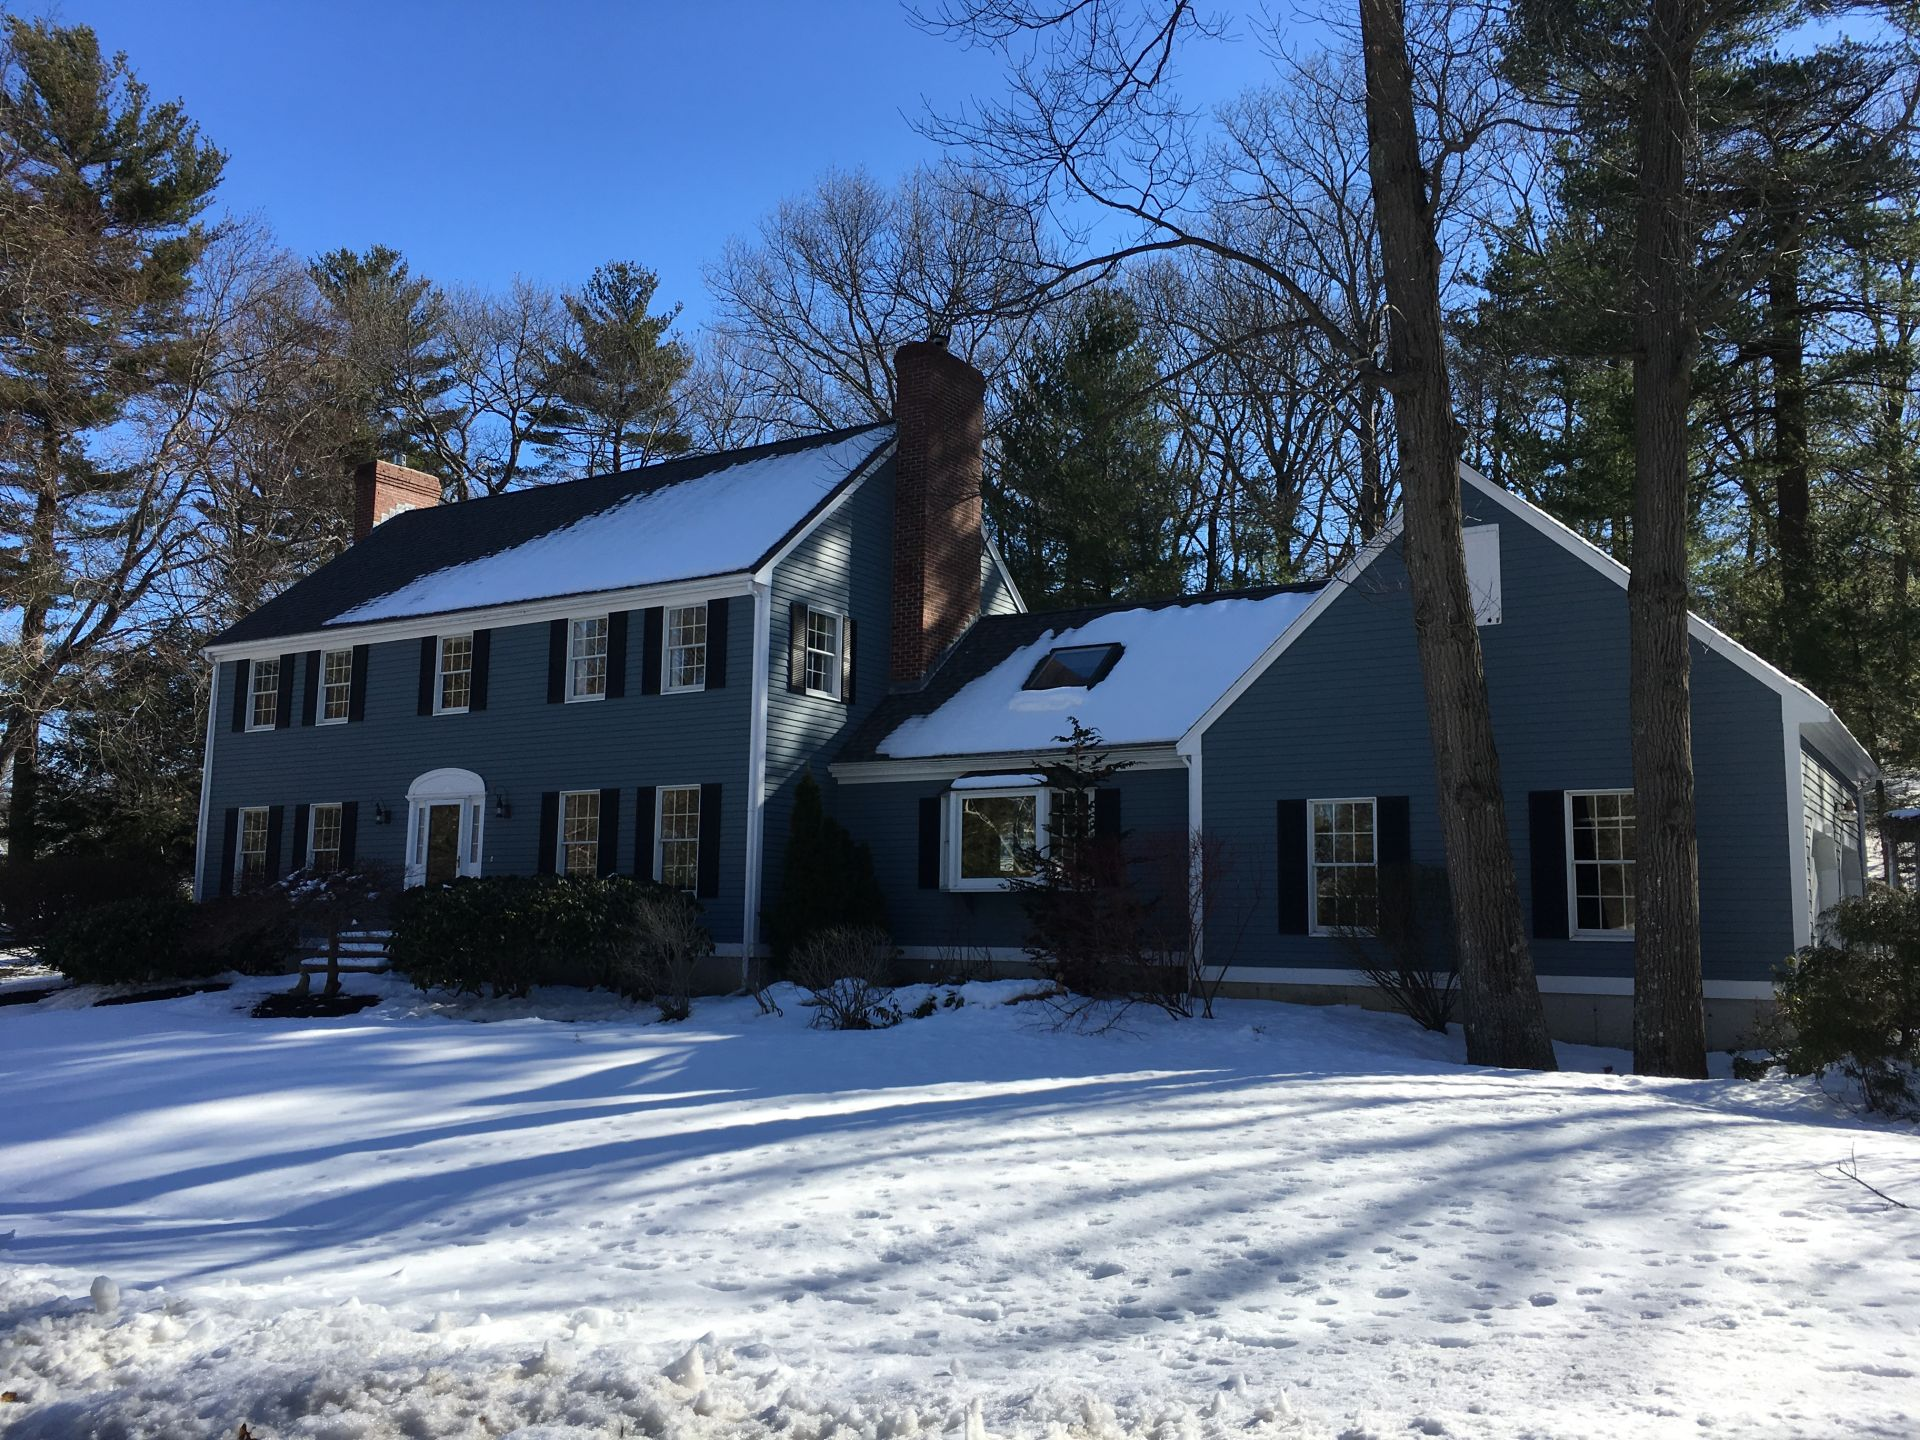 NEW LISTING Beverly MA 01915 Centerville Under $750,000